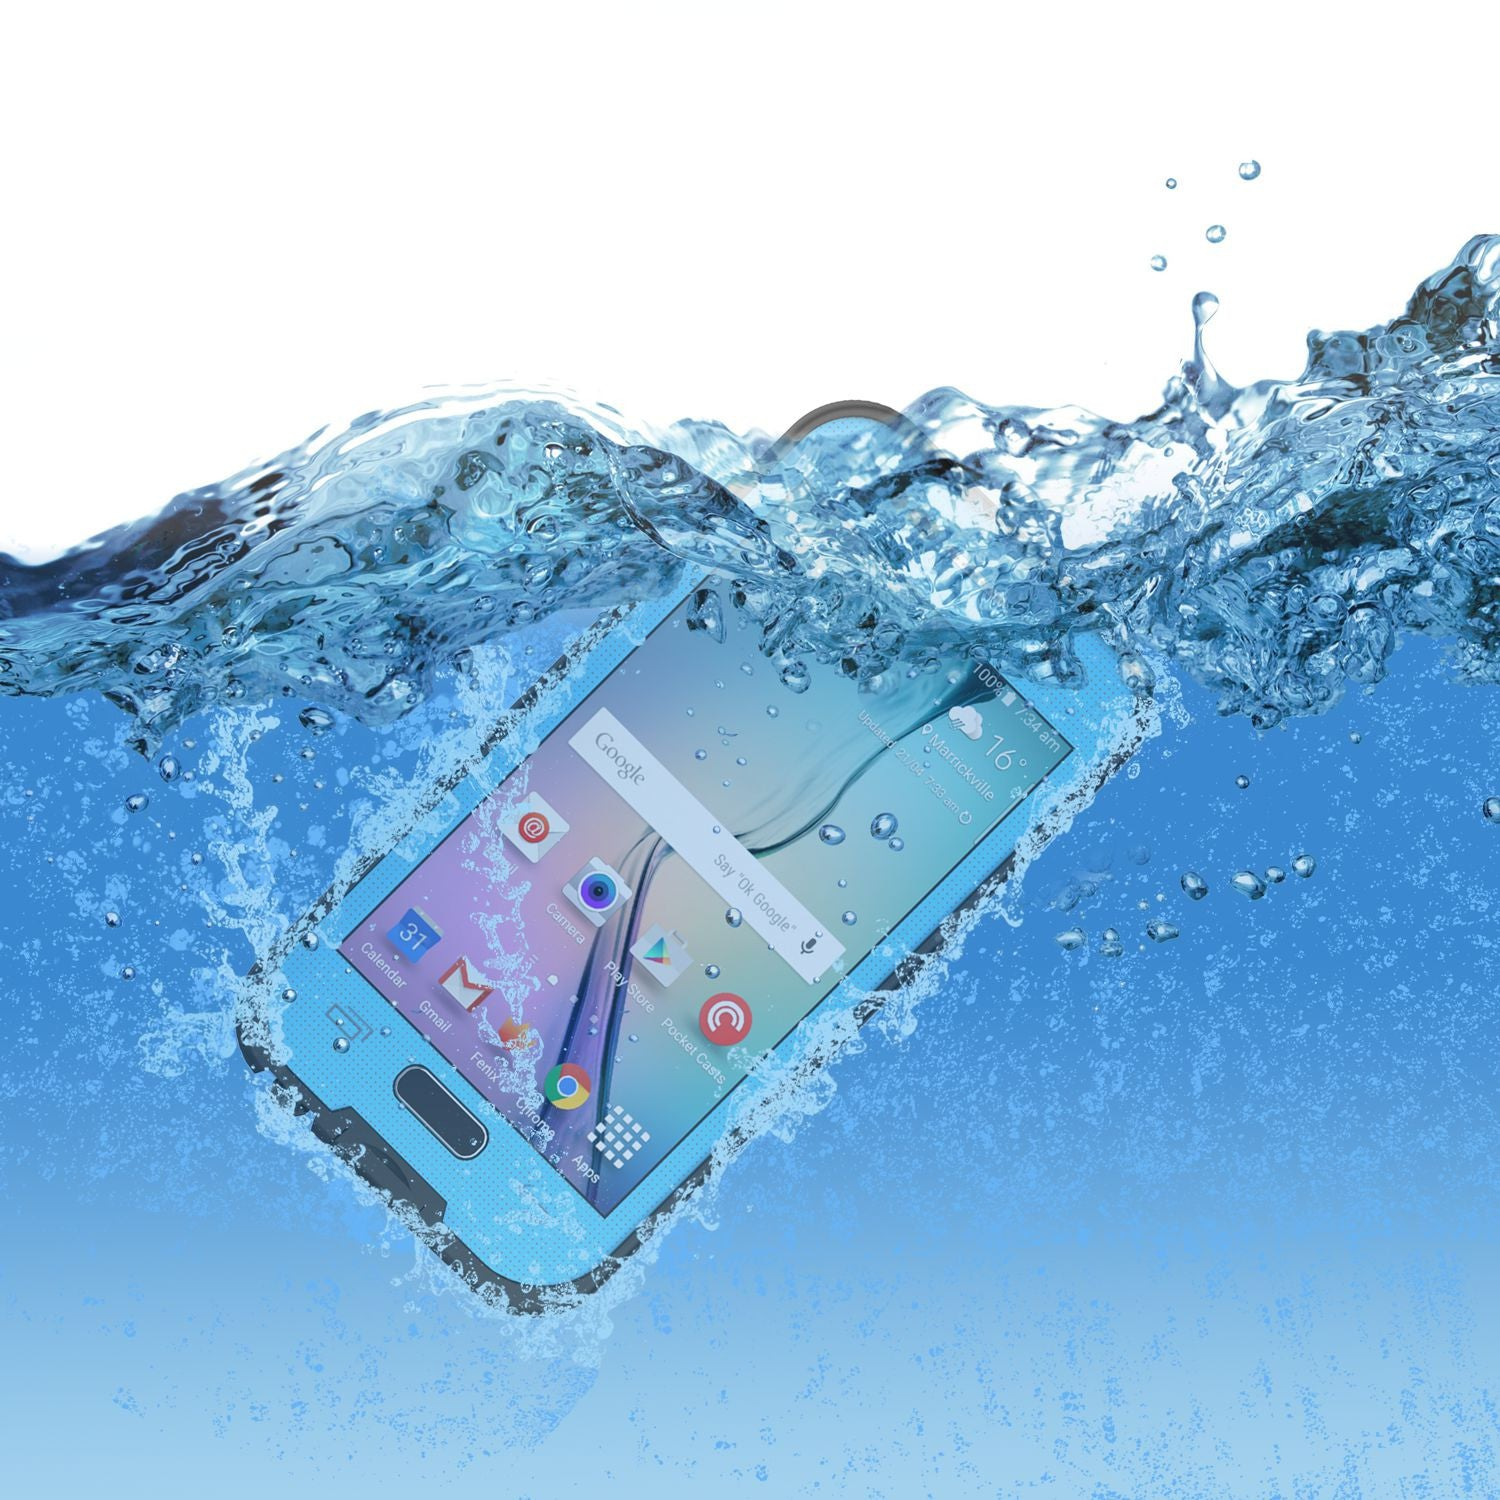 Galaxy S6 Waterproof Case, Punkcase SpikeStar Light Blue Water/Shock/Dirt Proof | Lifetime Warranty